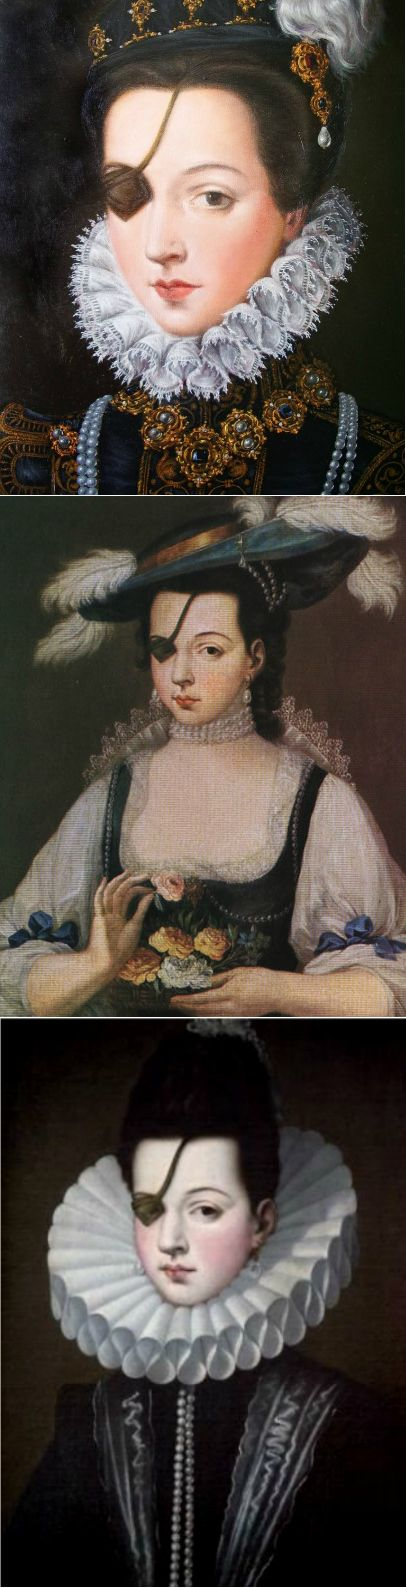 Ana de Mendoza (Doña Ana de Mendoza y de la Cerda, Princess of Eboli, Duchess of Pastrana). Spanish aristocrat, 1540-1592. Considered one of the more accomplished women of her time by her peers. Also regarded as one of the most beautiful ladies in Spain, despite having lost an eye in a mock duel with a page when she was young. Married at 12 years old to Rui Gomes da Silva, 1st Prince of Éboli and minister to the King.